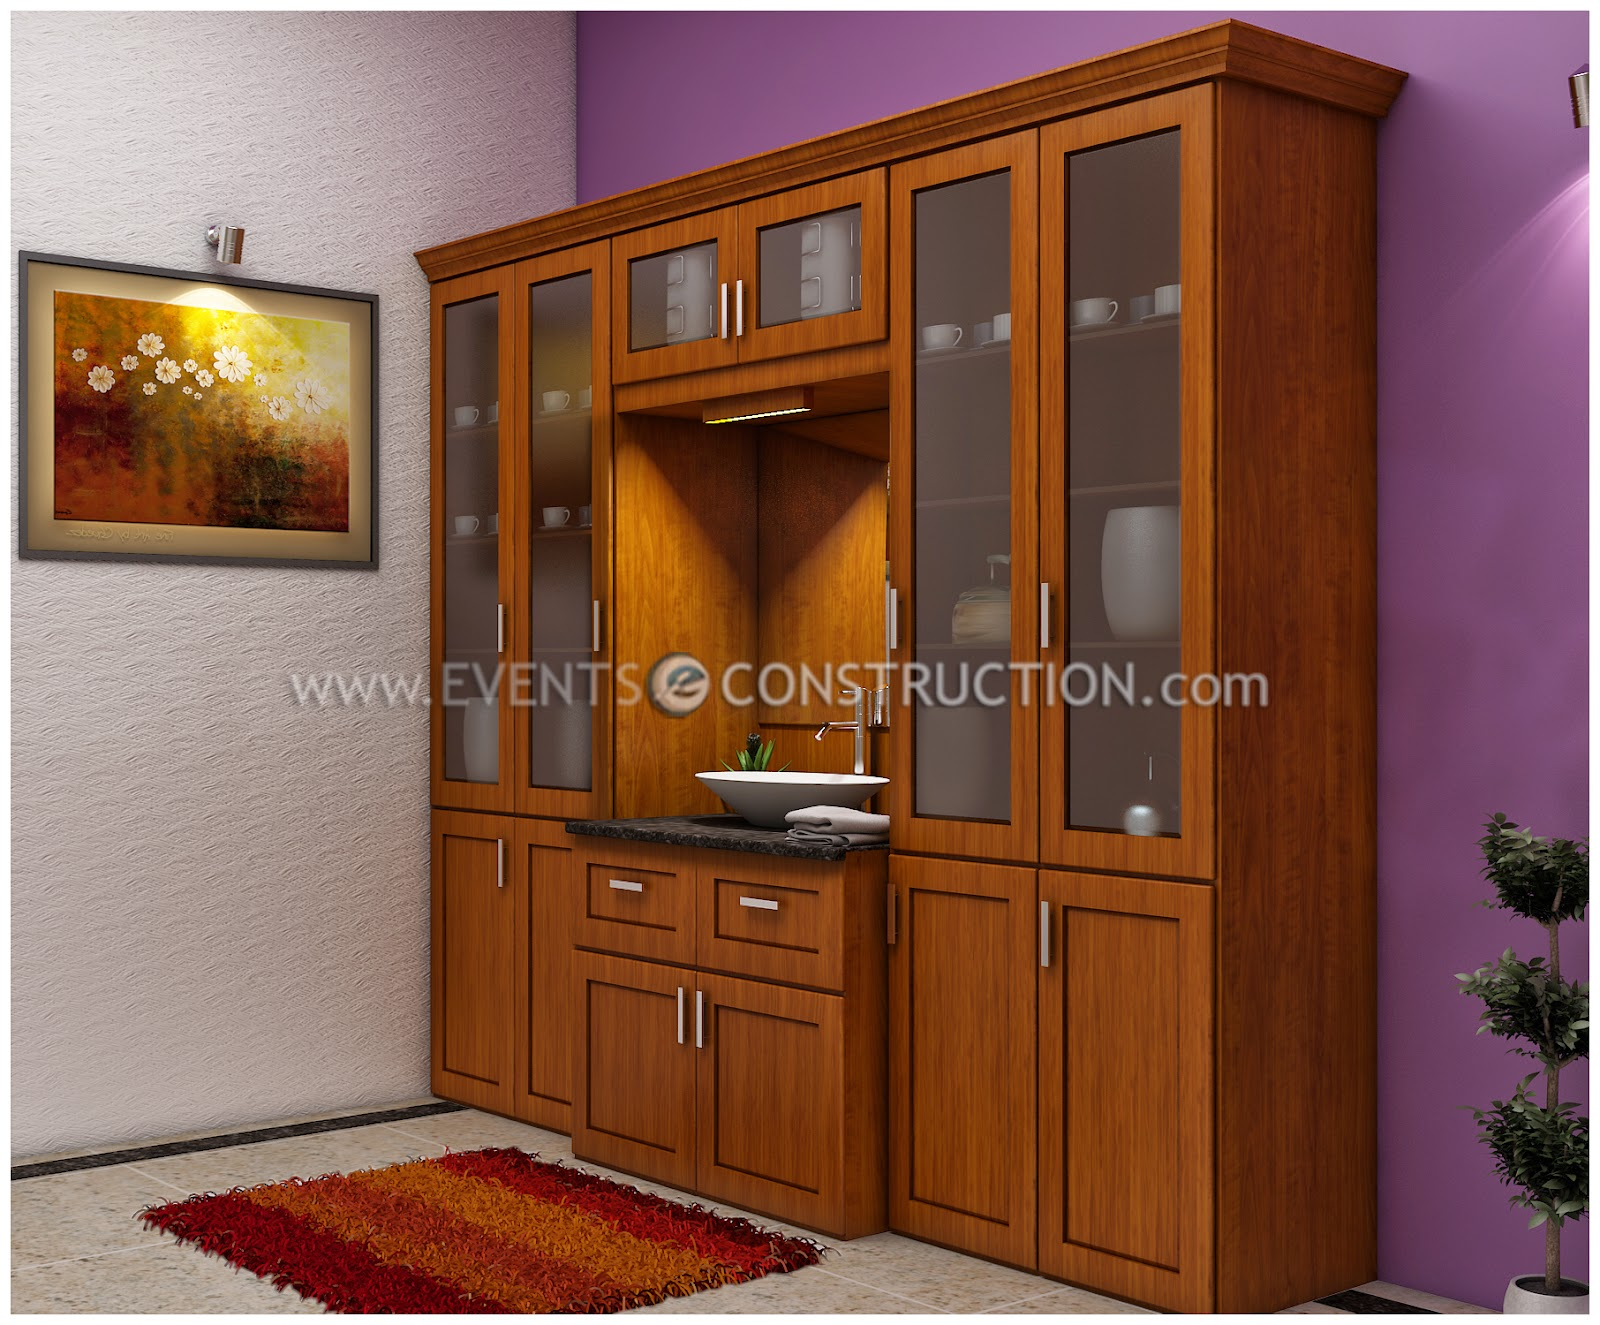 Evens Construction Pvt Ltd Wooden Crockery With Wash Area